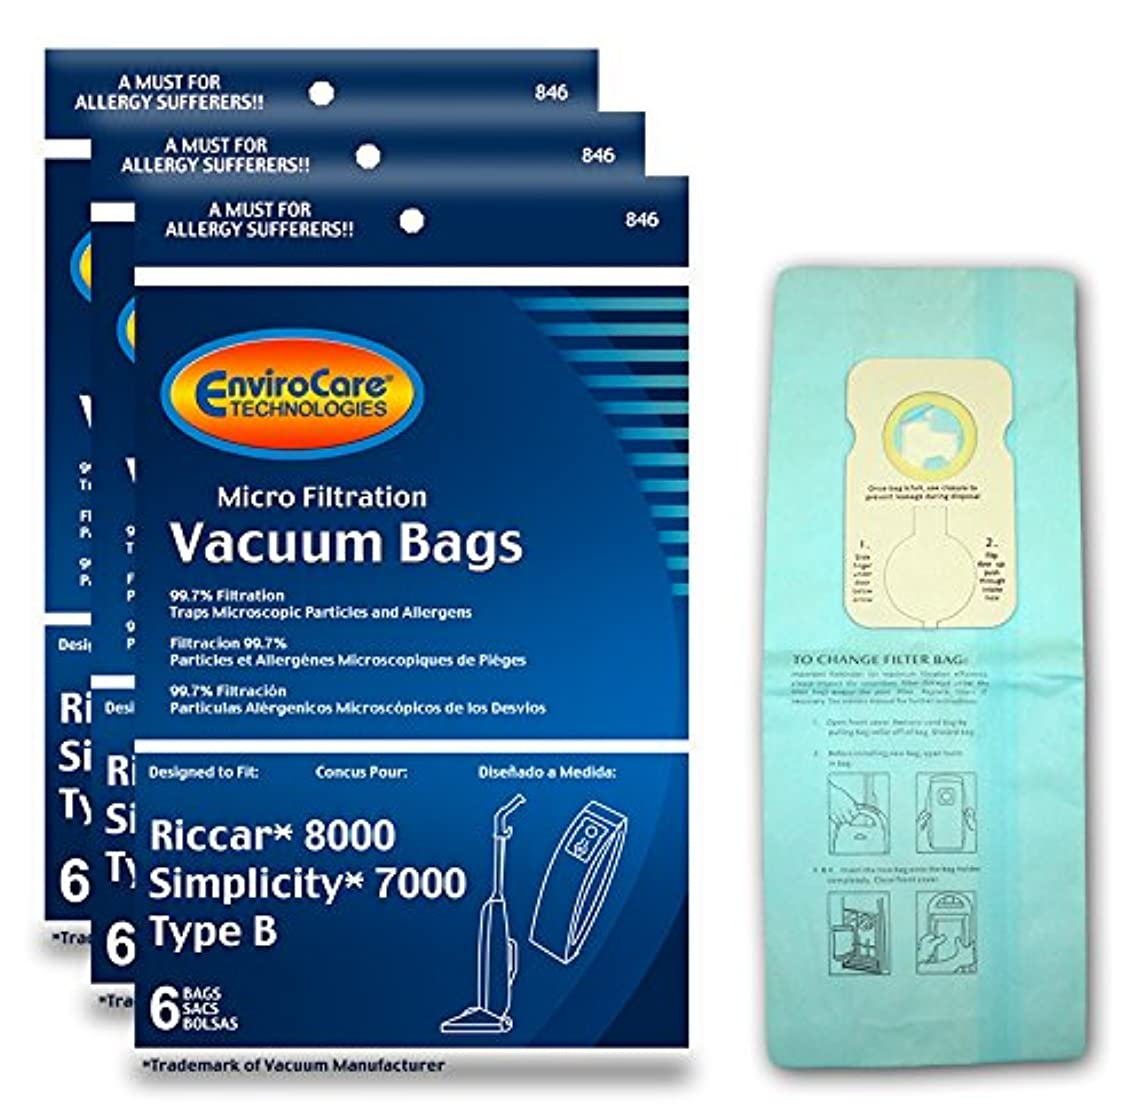 EnviroCare Replacement Vacuum Bags for Riccar 8000 and Simplicity 7000 Type B 18 pack